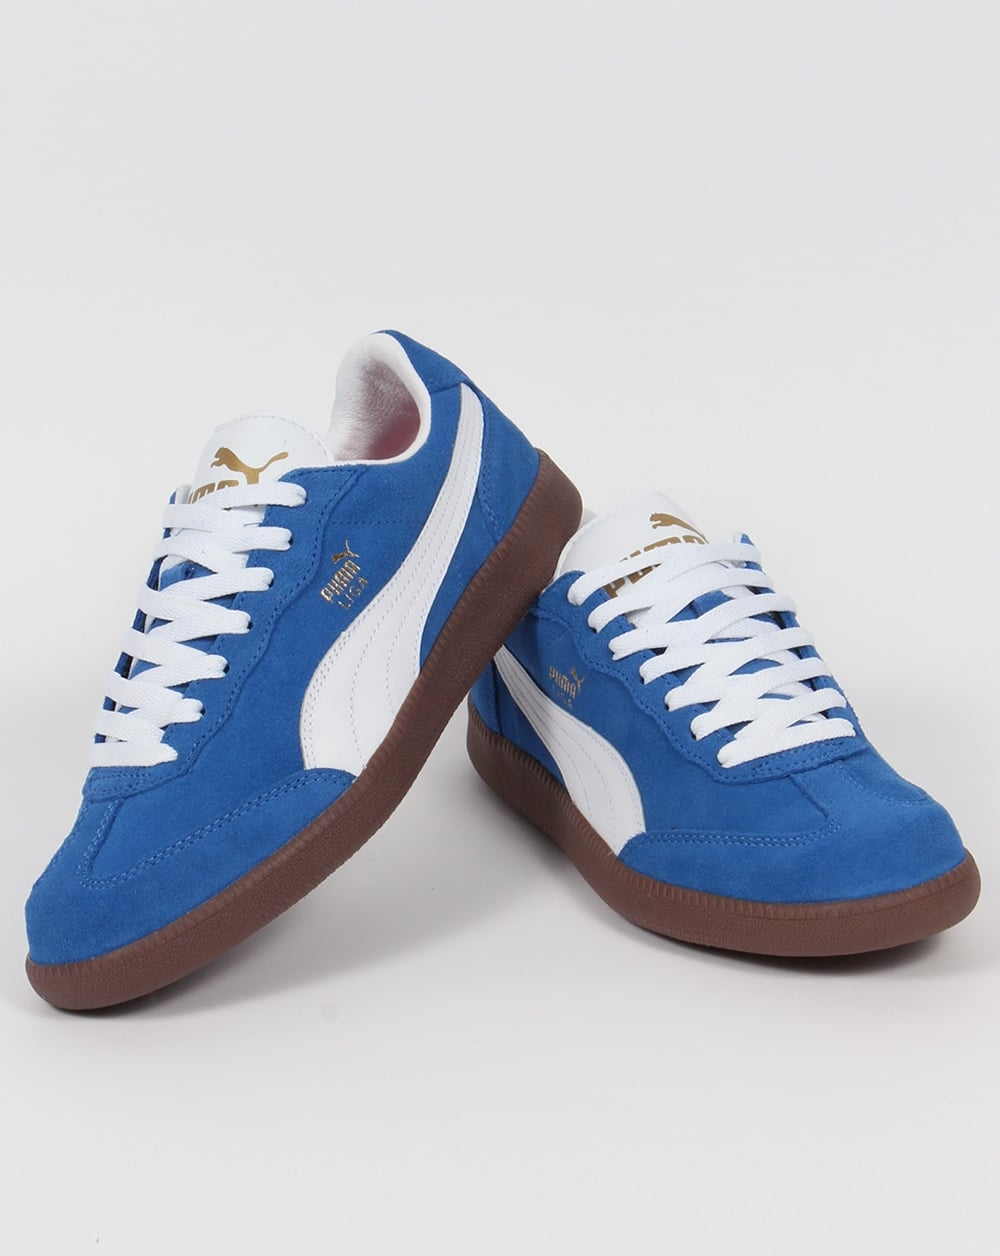 buy online fc21c 35a99 Puma Liga Suede Trainers Blue/White